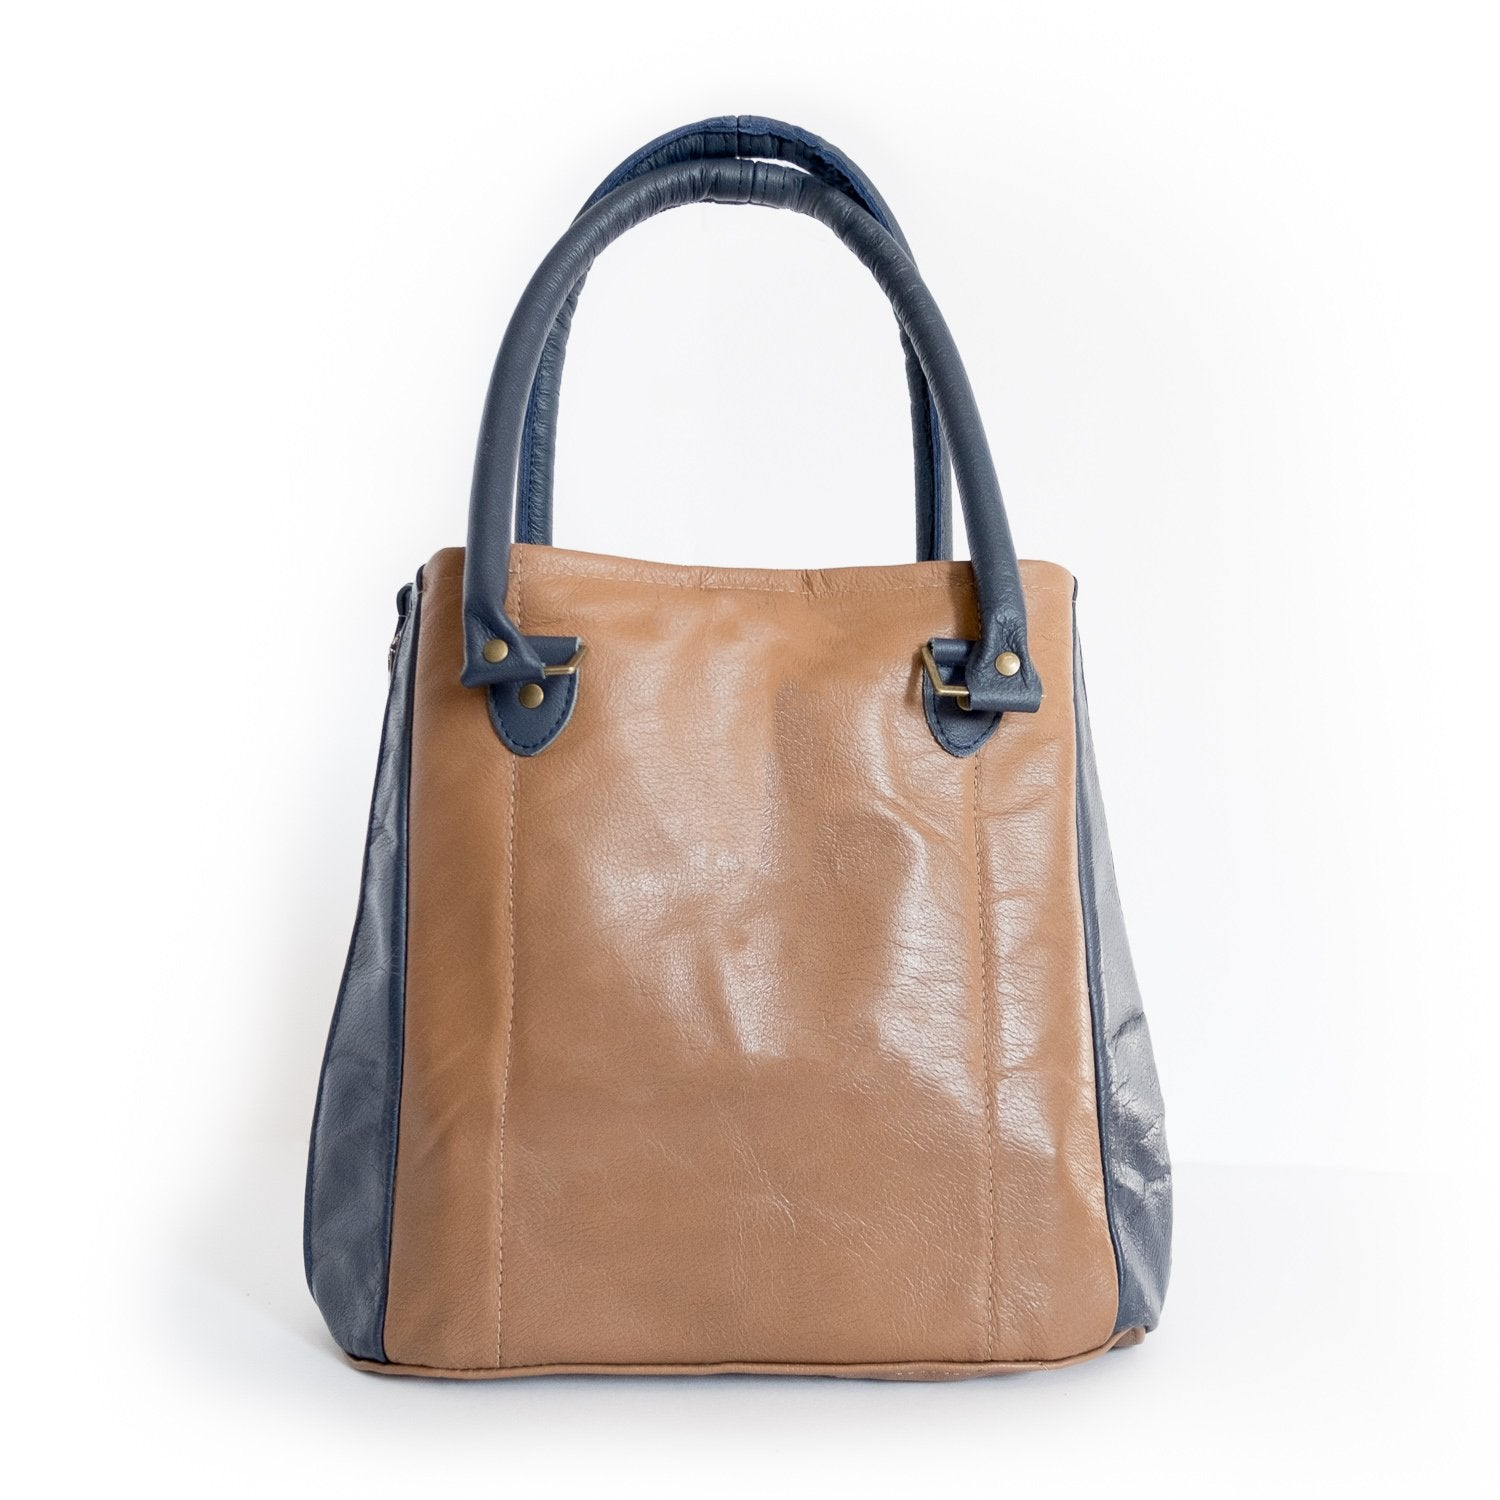 In Flight LUV Convertible Tote